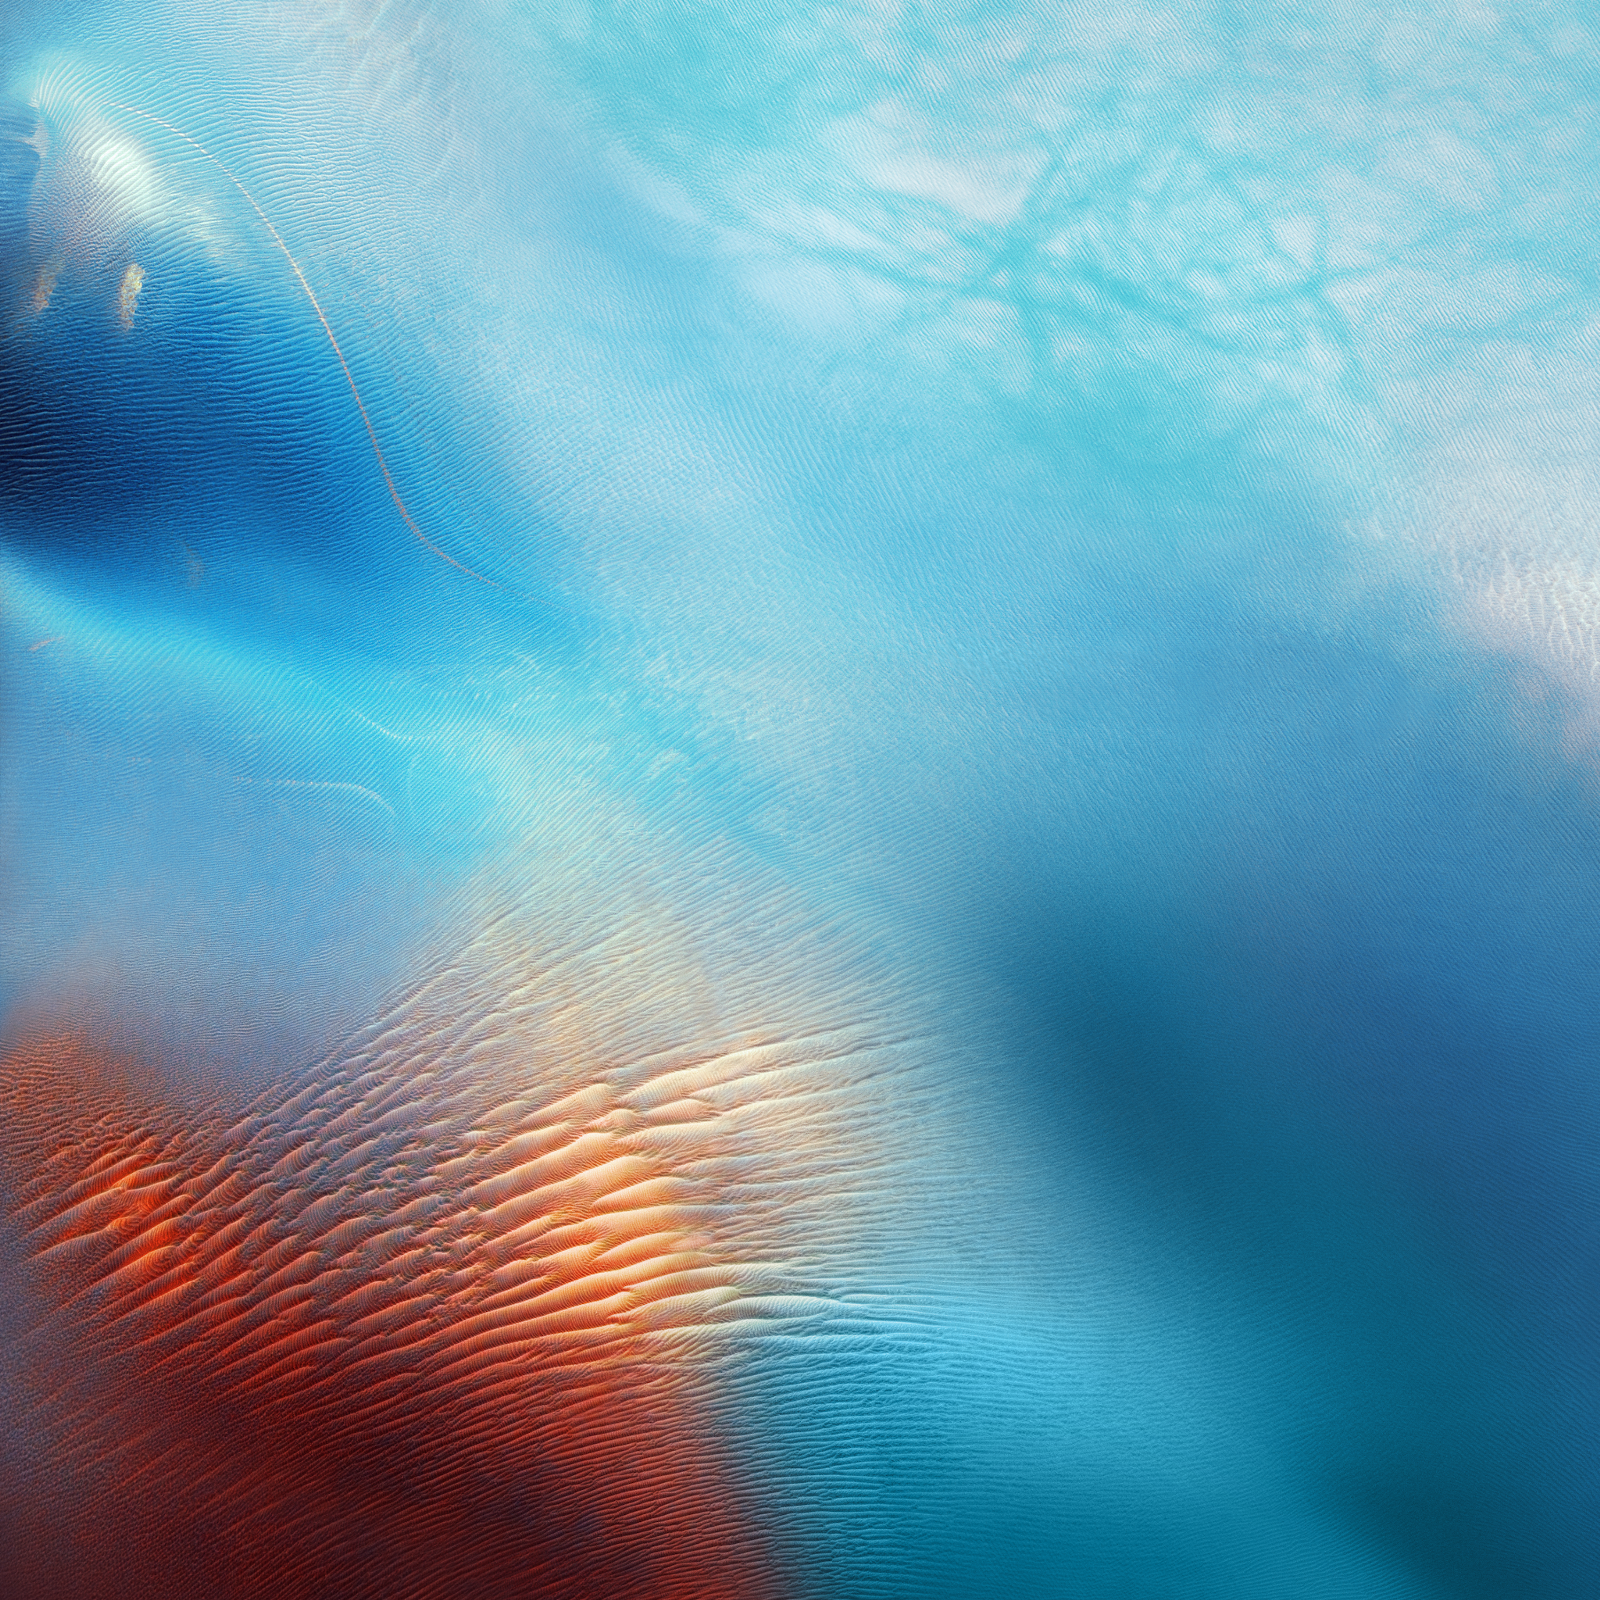 Change Your Wallpaper On The Fly In iOS 9